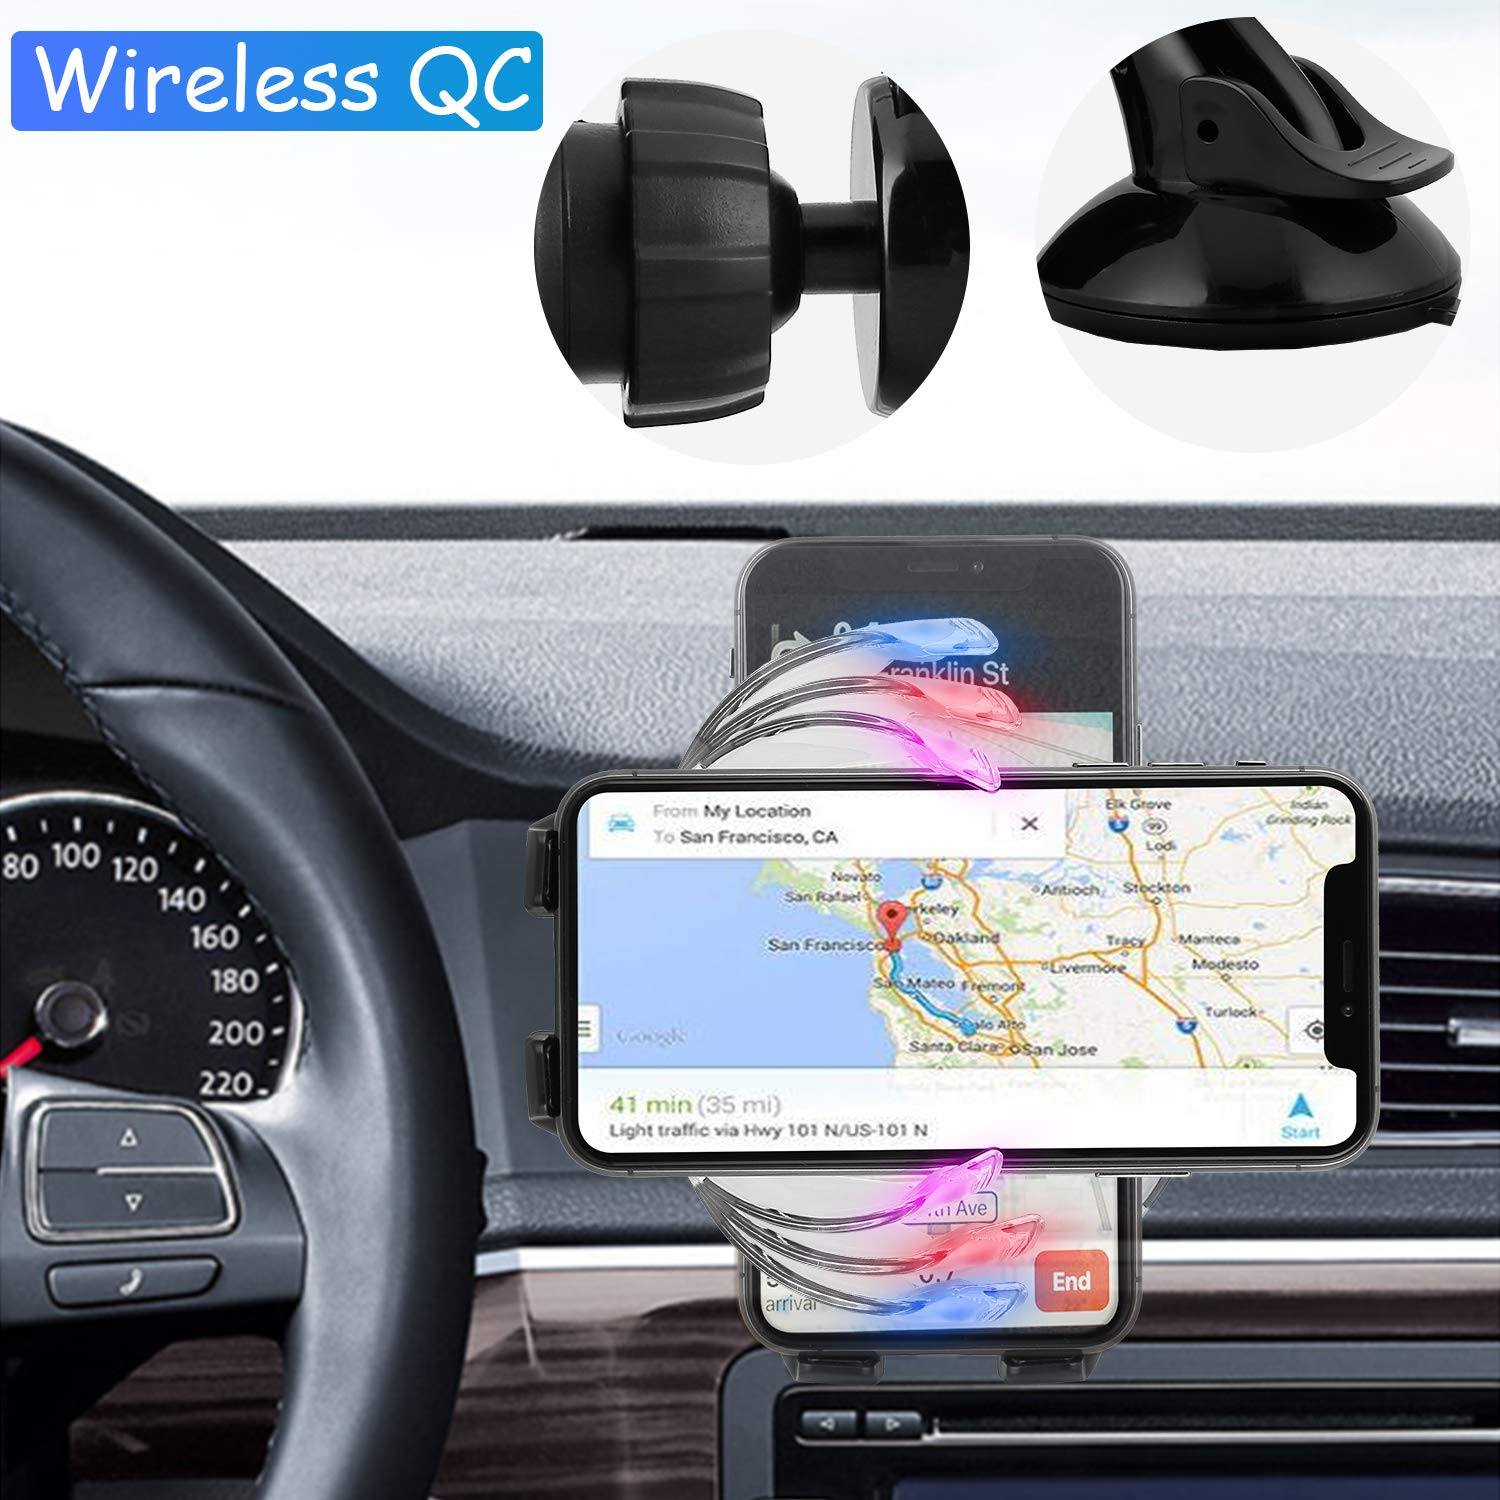 Wireless Car Charger Mount Auto Clamping 10W//7.5W Qi Fast Charging Car Phone Holder Air Vent Windshield Dashboard for iPhone Xs//Xs Max//XR//X// 8//8 Plus Samsung Galaxy S10//S9//S8//S8+ - Black